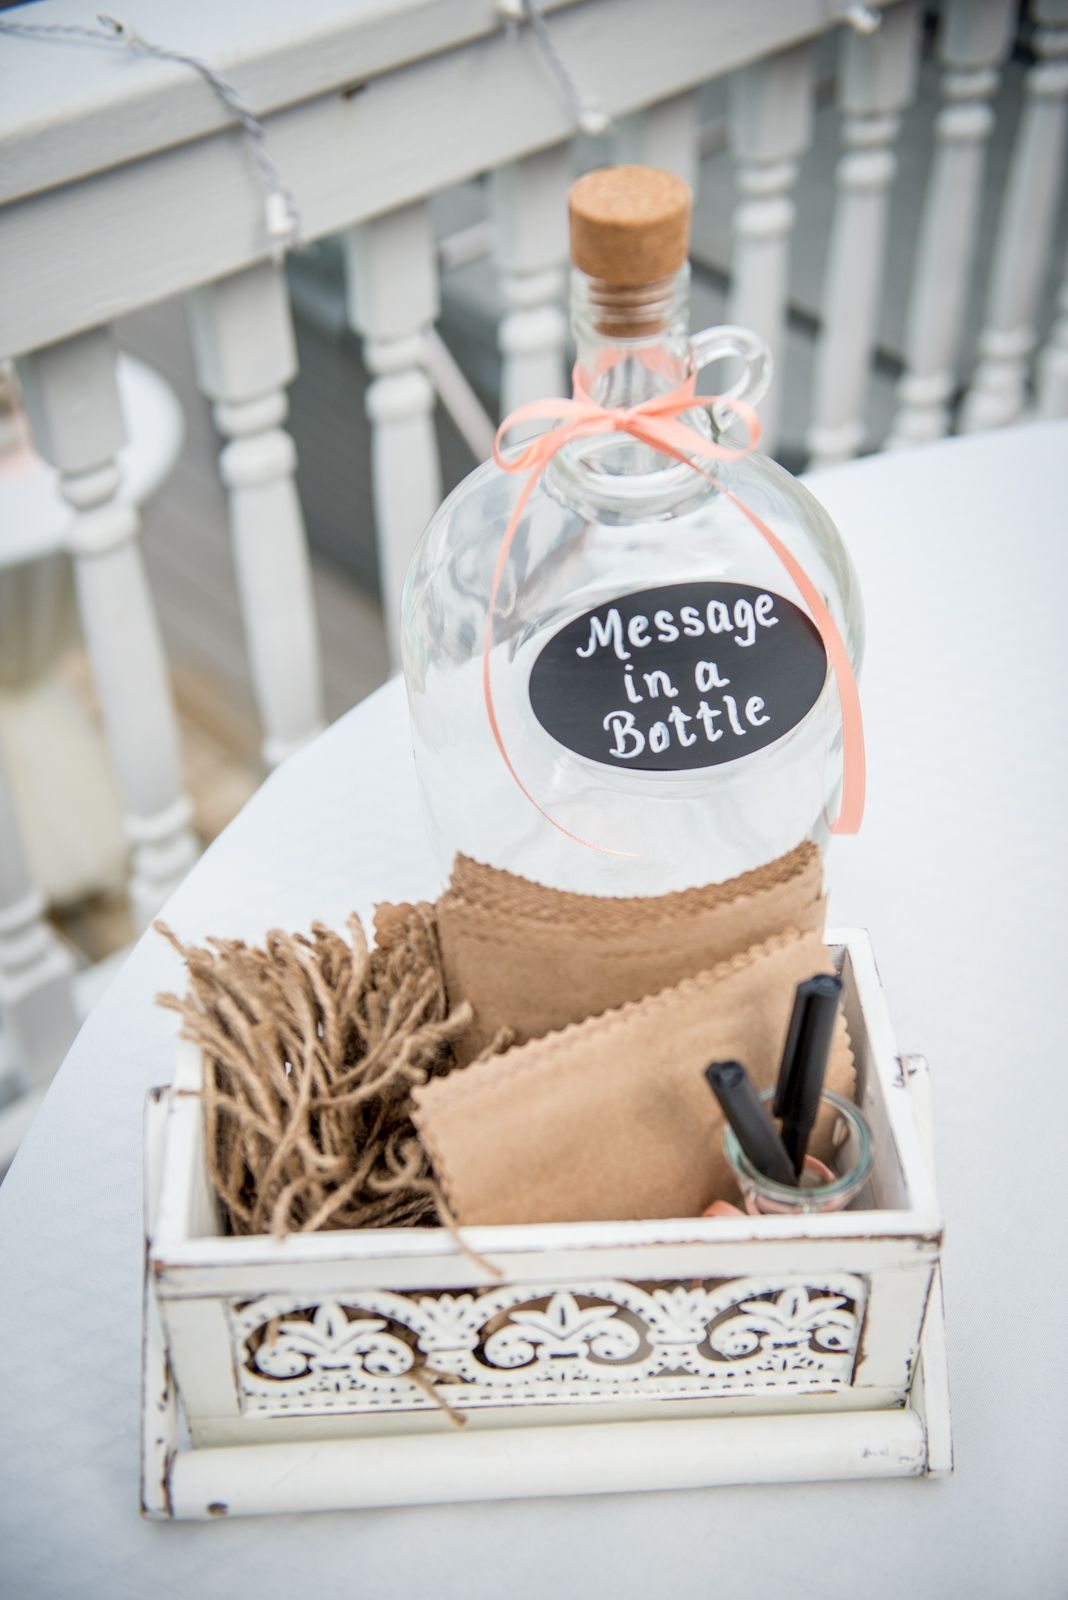 Beach wedding: Message for the Bride and Groom | My Wedding ...